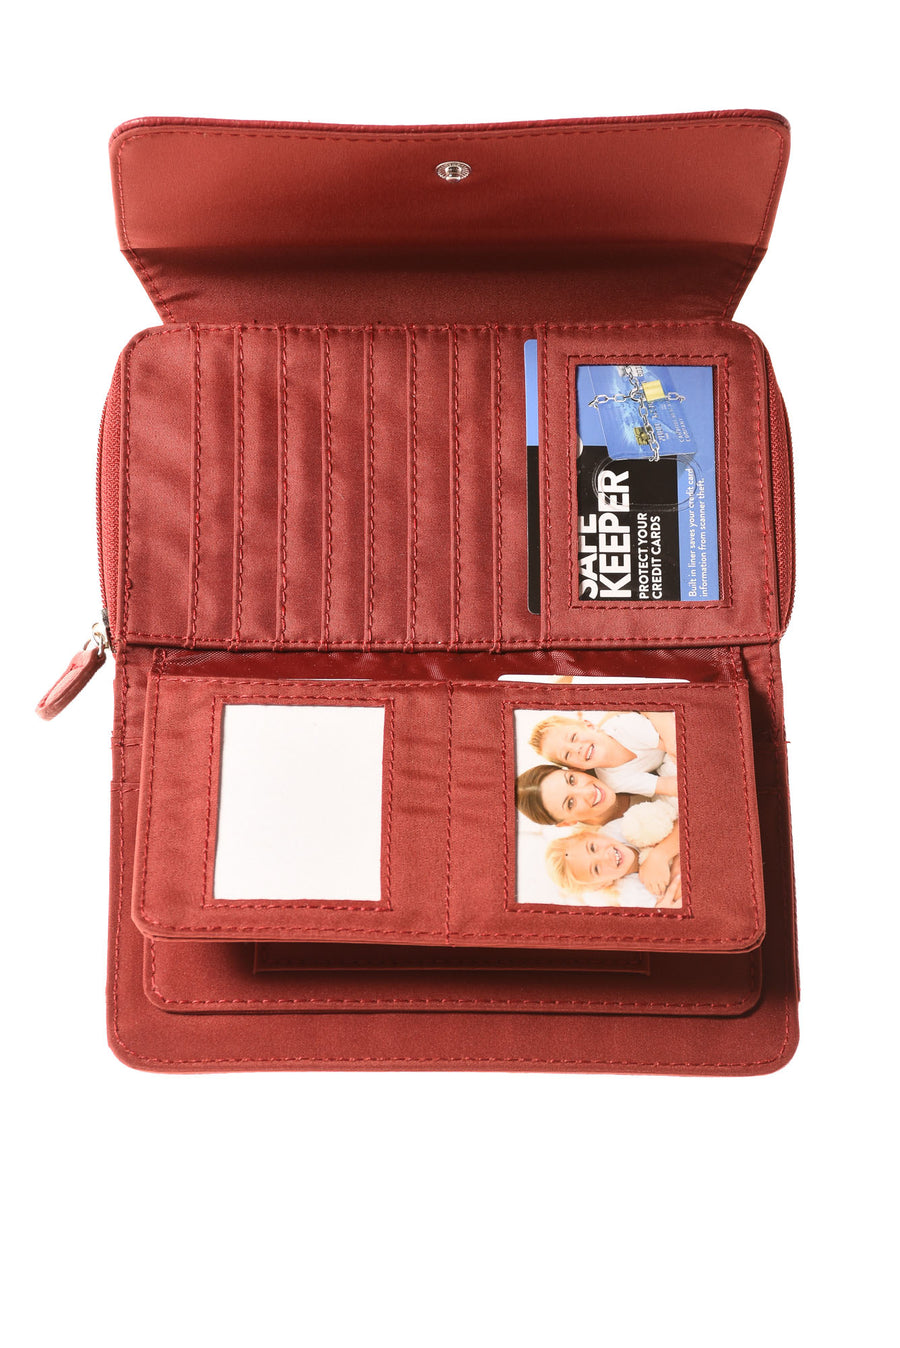 USED Safe Keeper Women's Wallet N/A Red